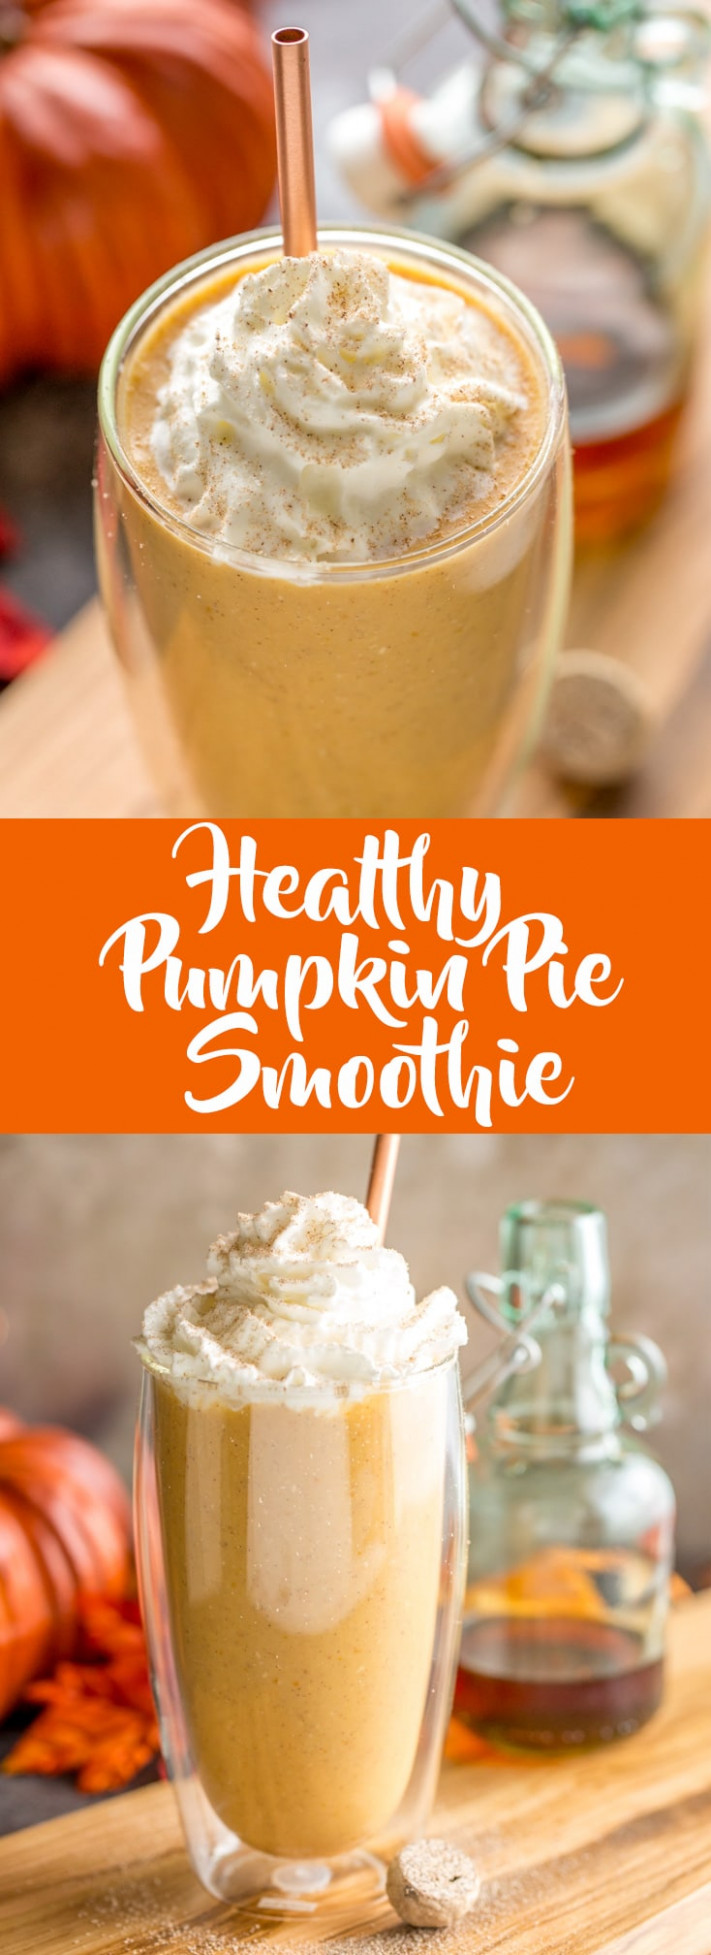 Healthy Pumpkin Pie Smoothie - Fox and Briar - recipes canned pumpkin healthy